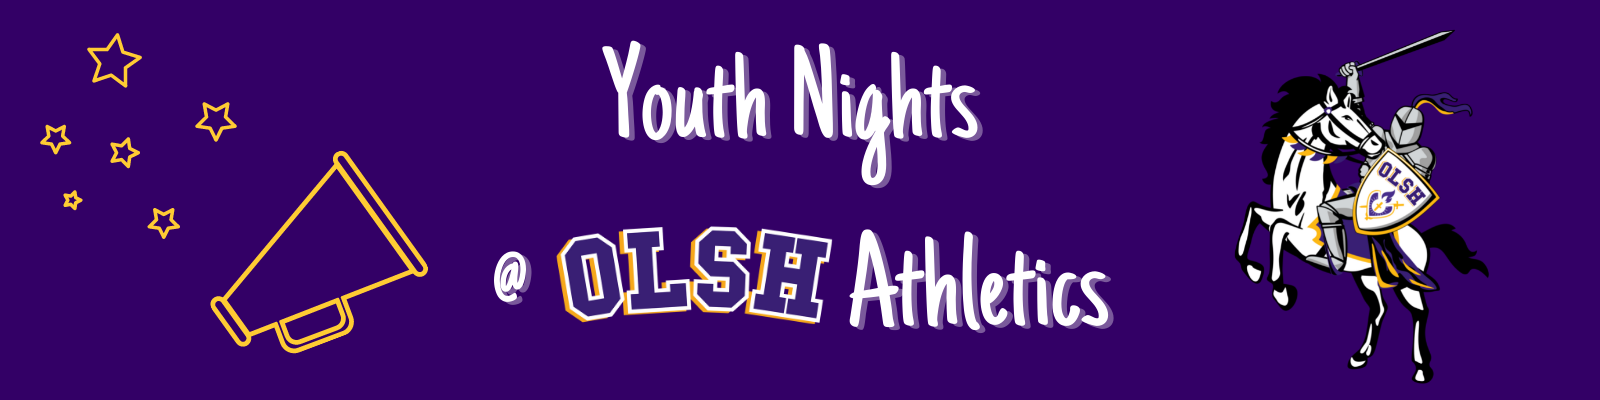 youth night banner